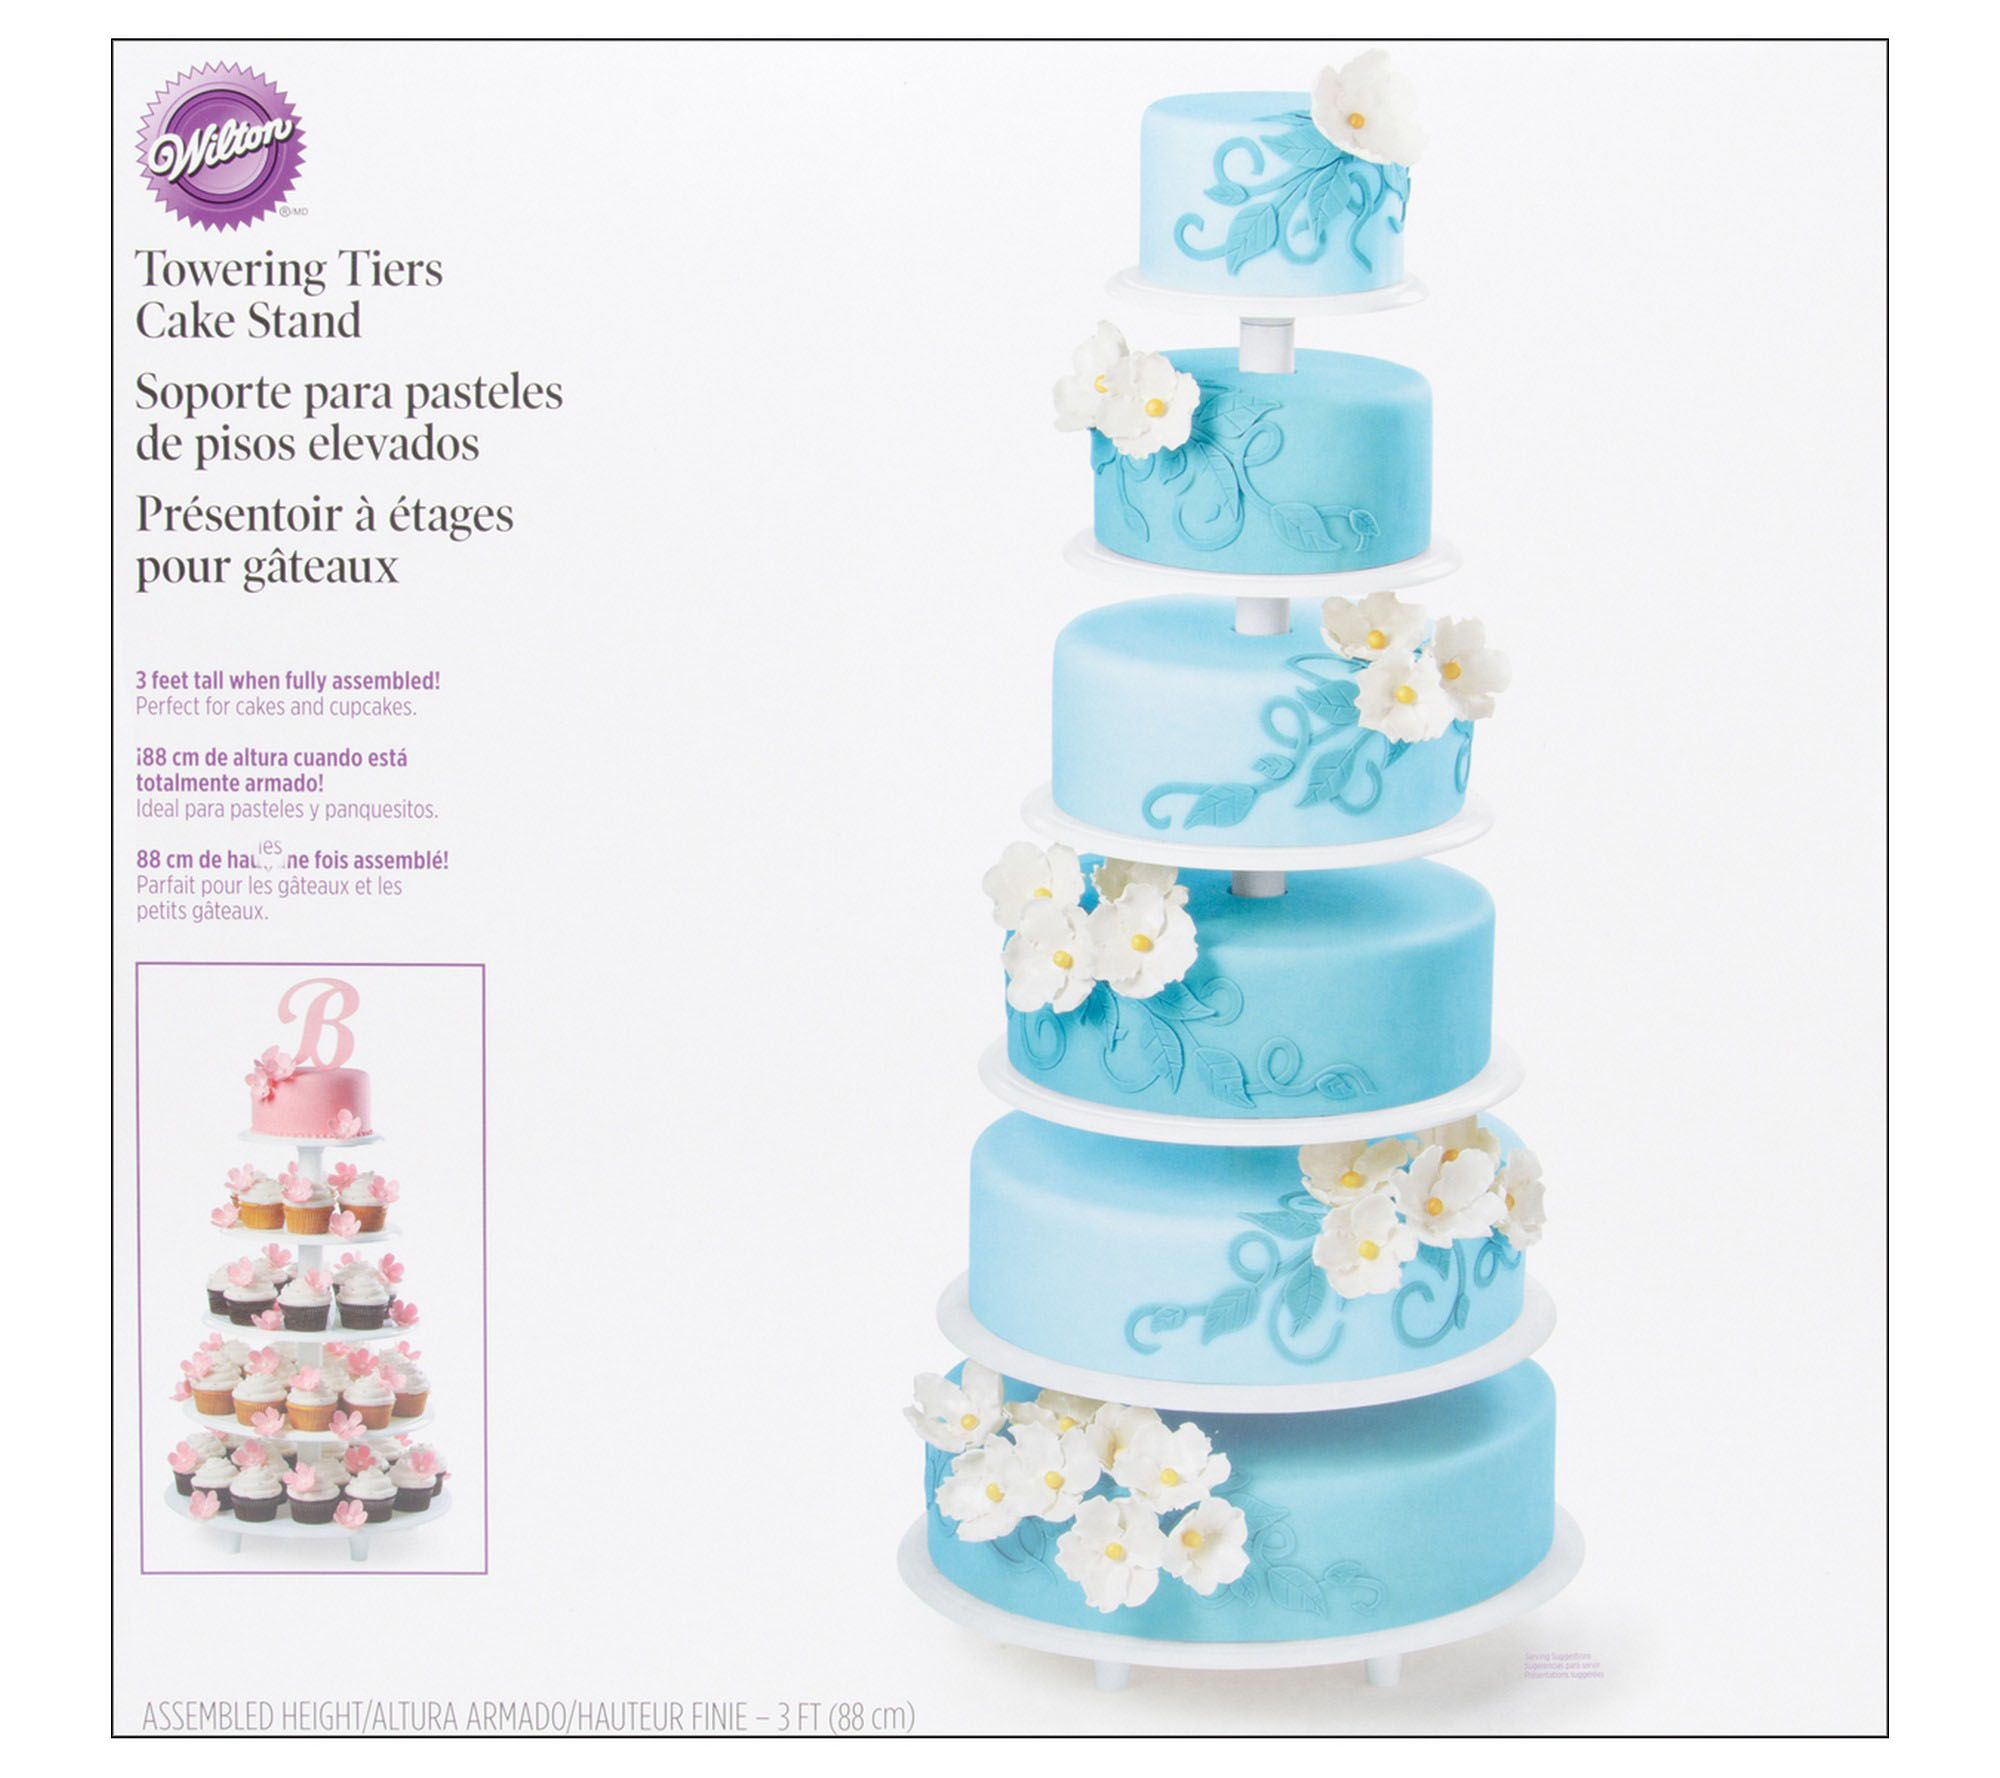 Wilton Towering Tiers Cake Stand — QVC.com